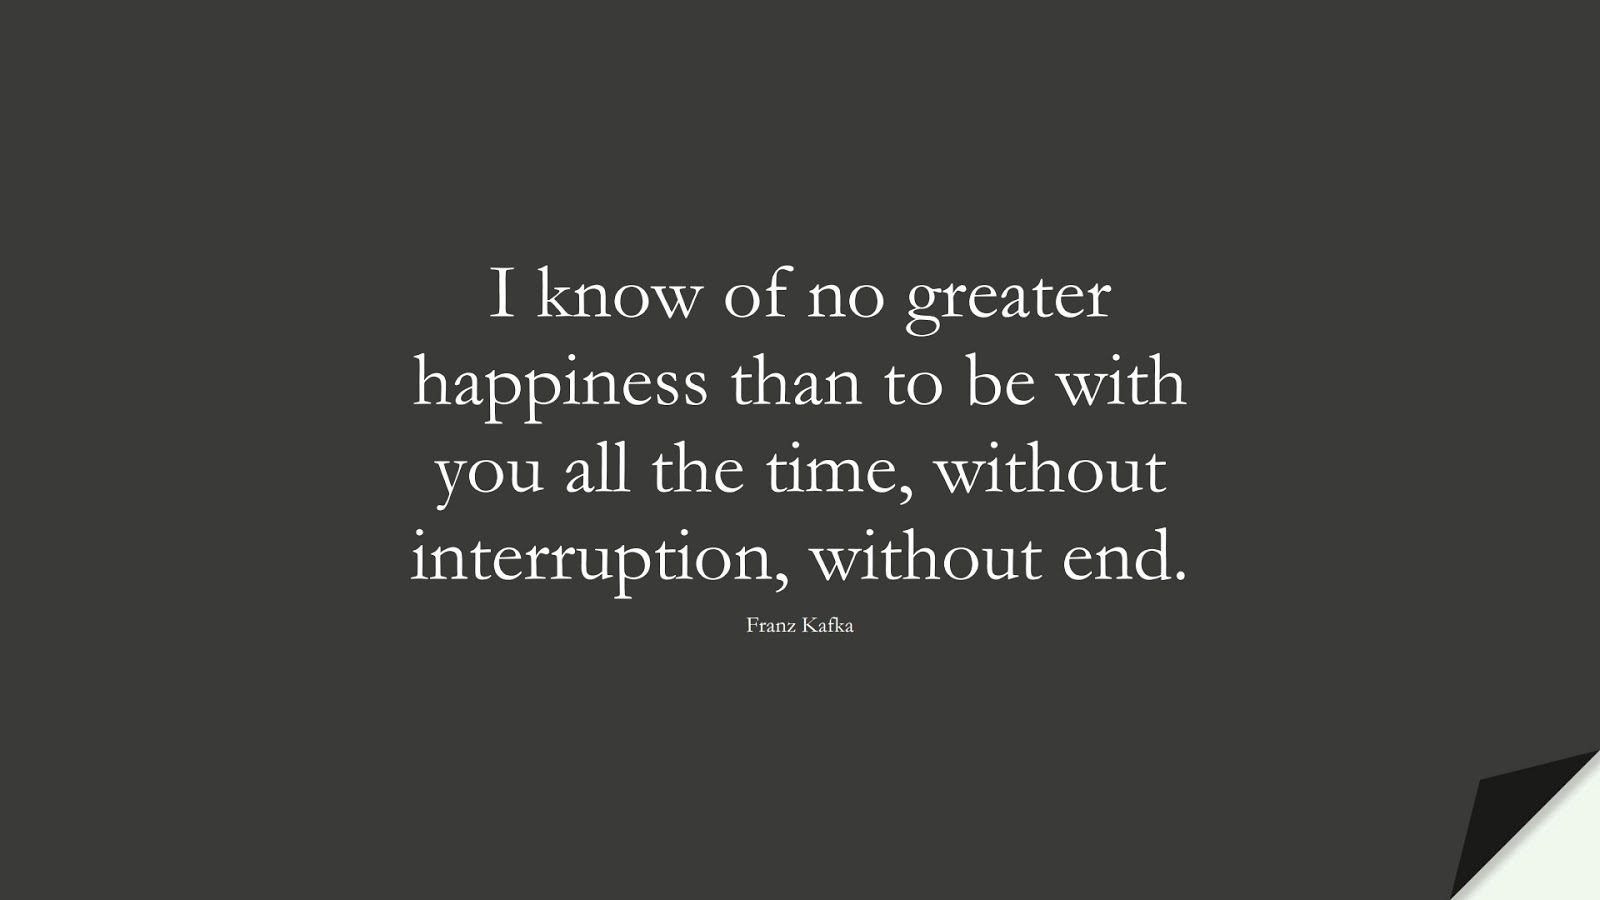 I know of no greater happiness than to be with you all the time, without interruption, without end. (Franz Kafka);  #LoveQuotes